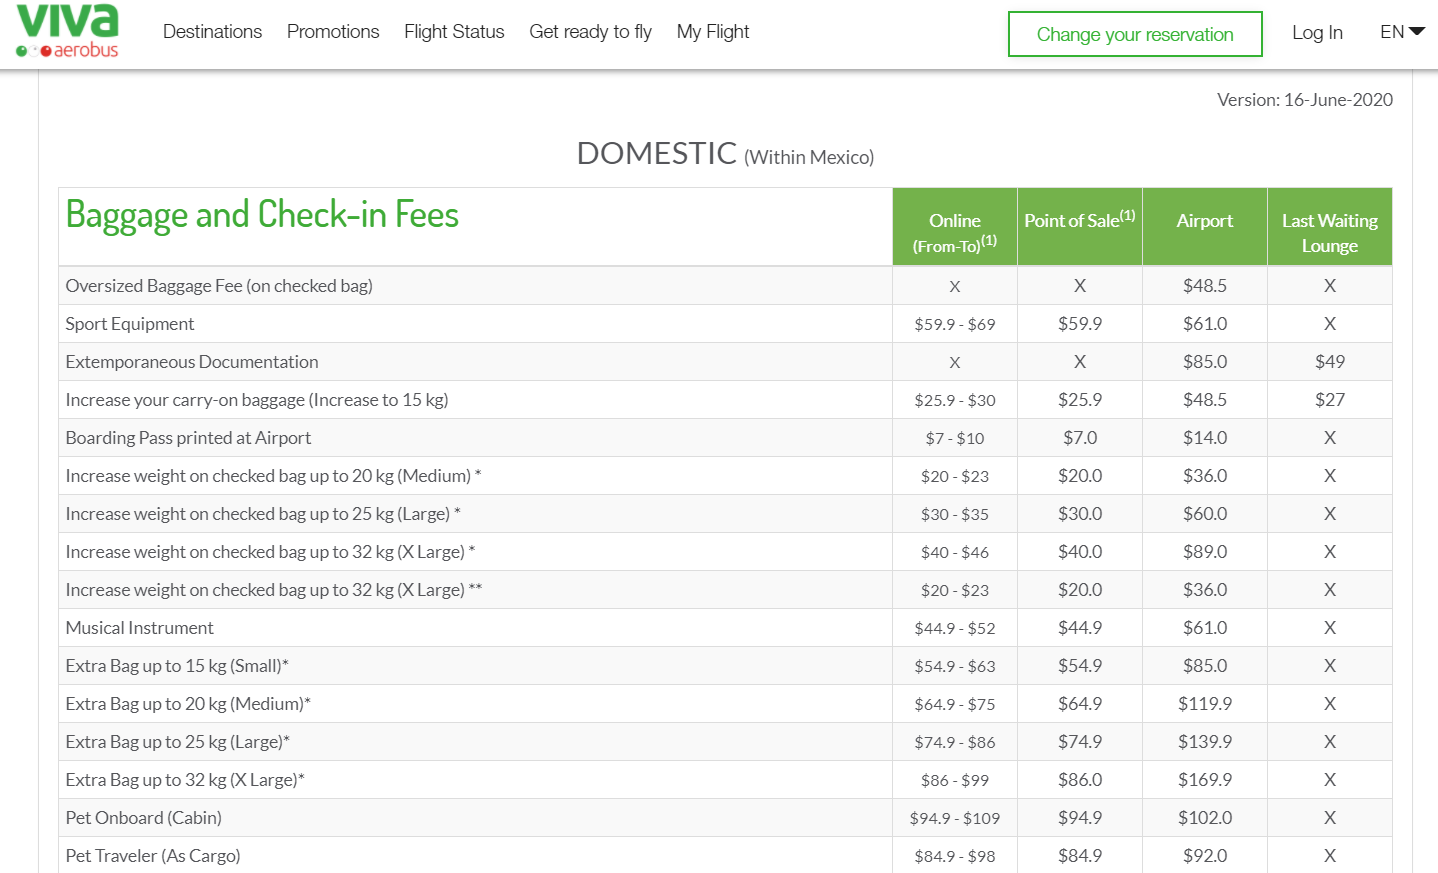 Table showing VivaAerobus's baggage fees for domestic flights.